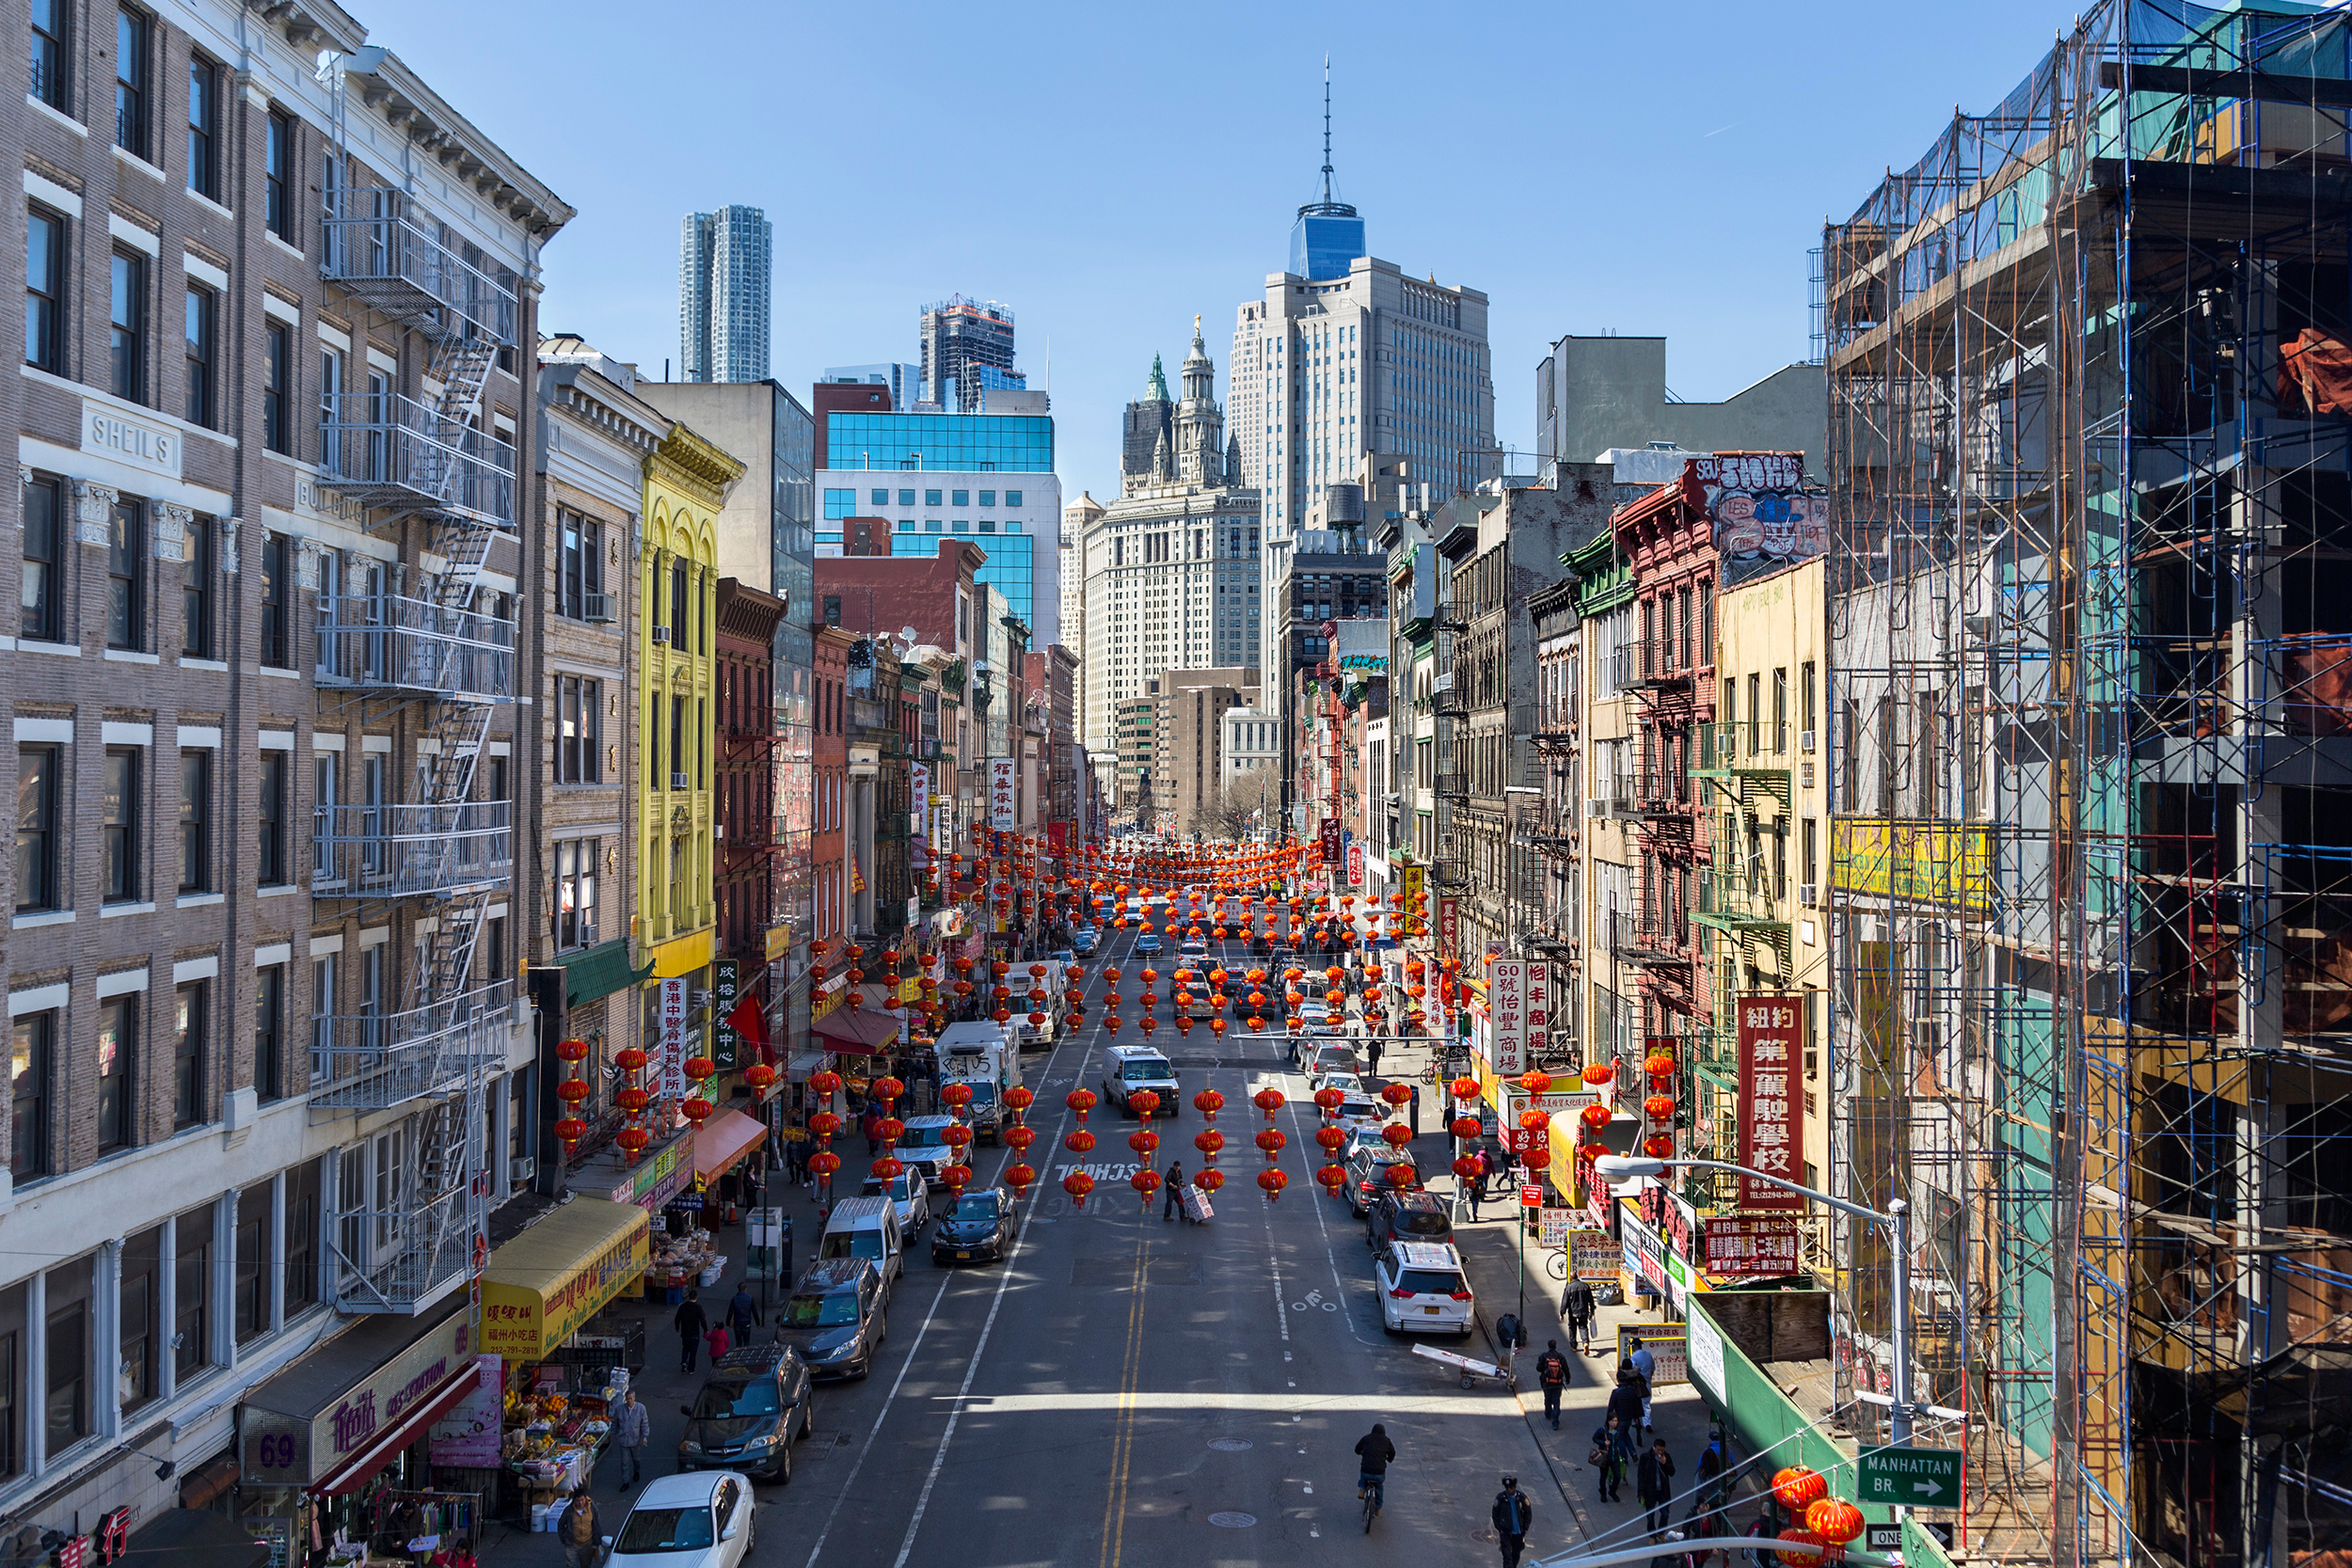 Explore the New Chinatown and Classic Chinatown